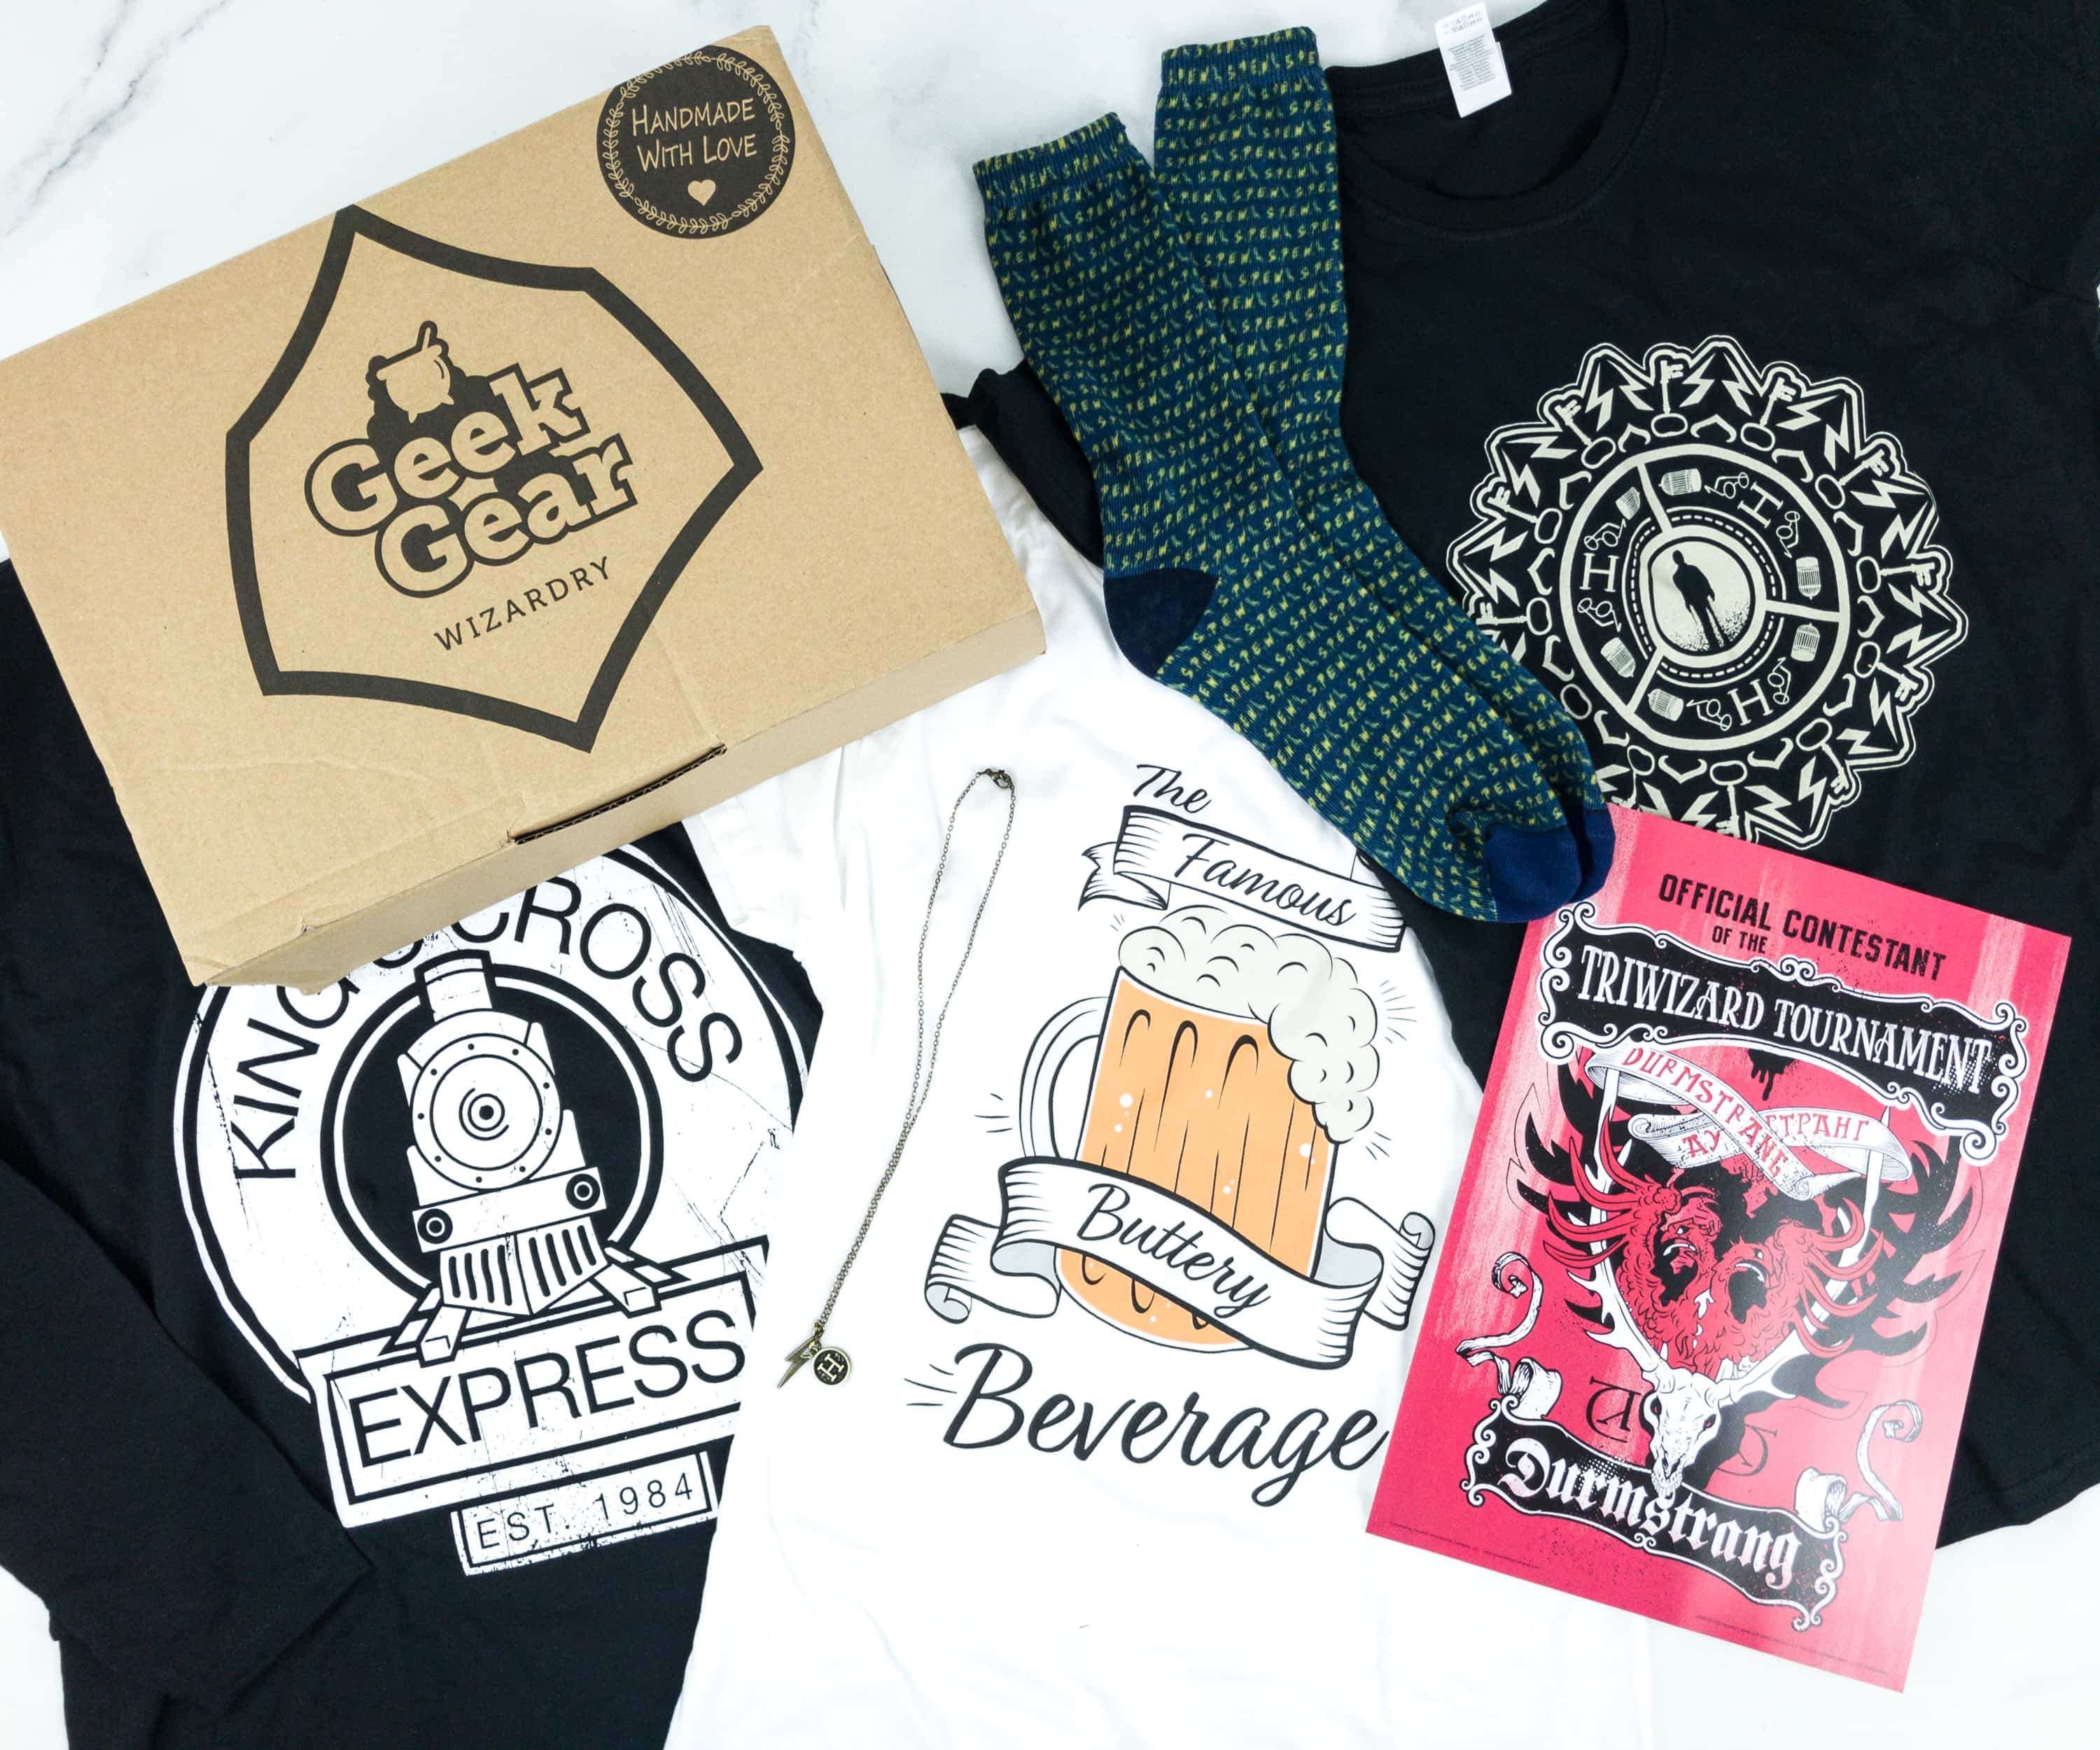 Geek Gear World Of Wizardry Wearables May 2019 Subscription Box Review Coupon Hello Subscription Roughly 2,000 students student ages: geek gear world of wizardry wearables